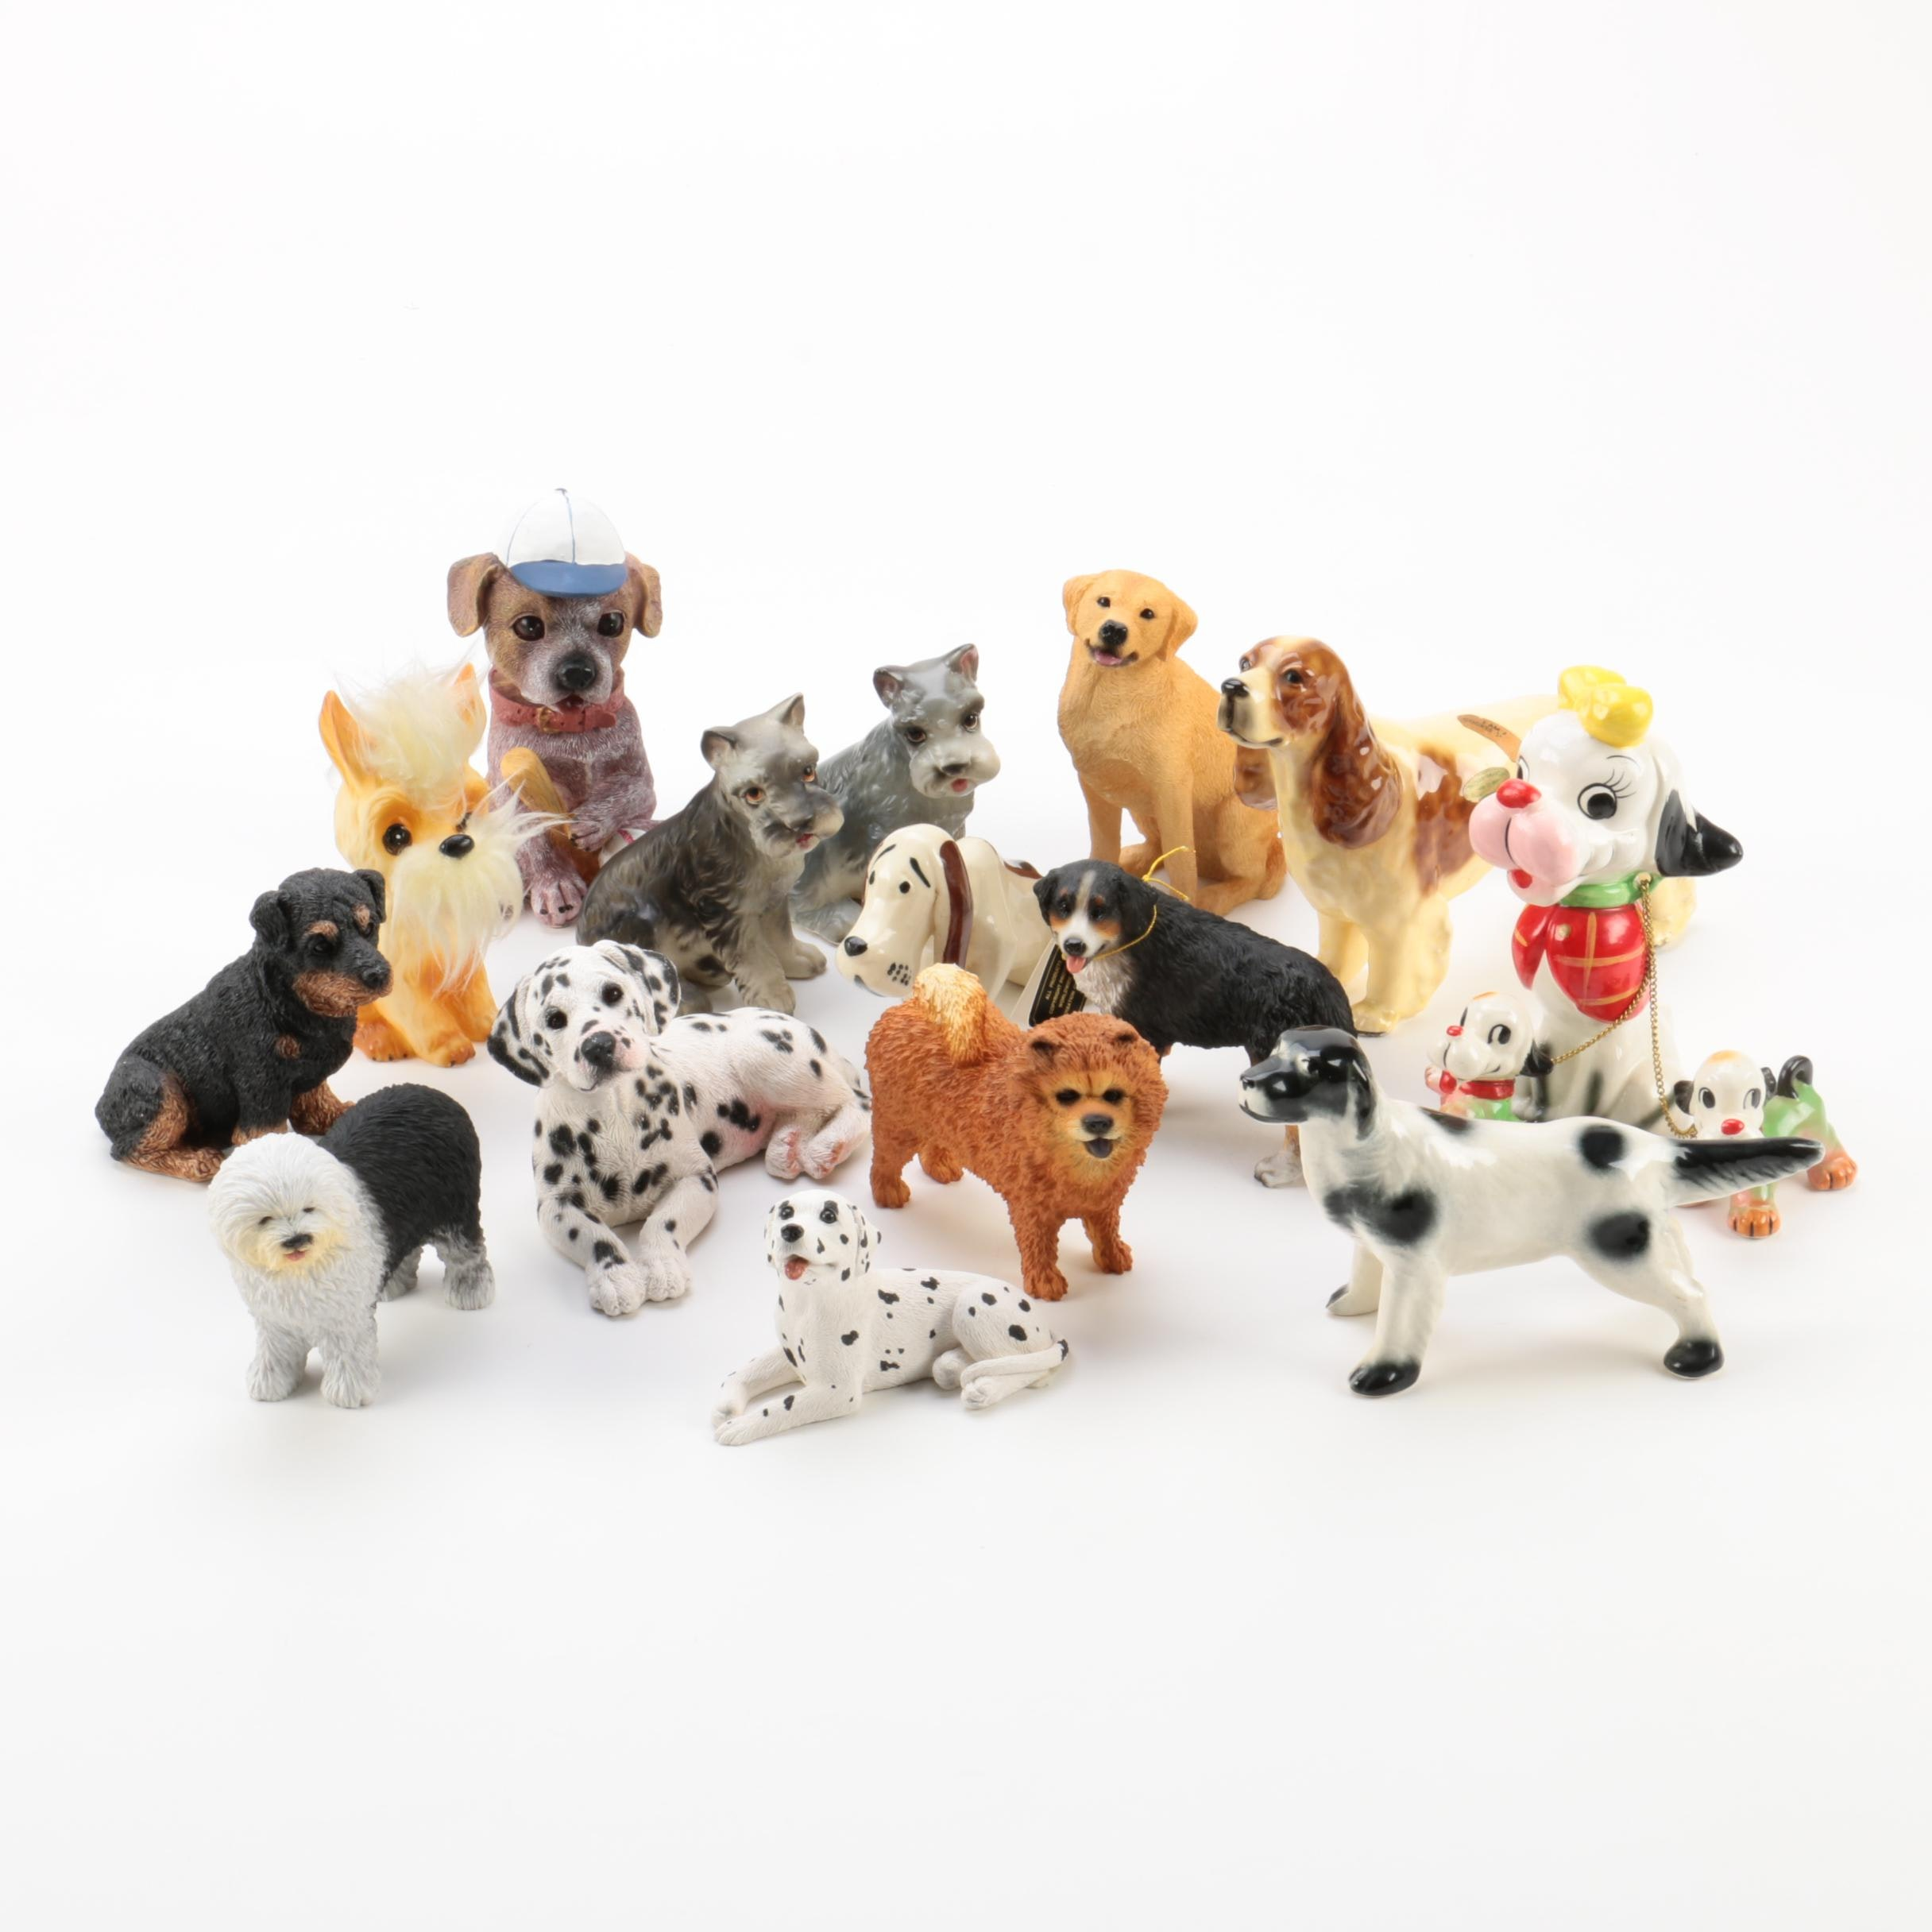 Ceramic and Resin Dog Figurines